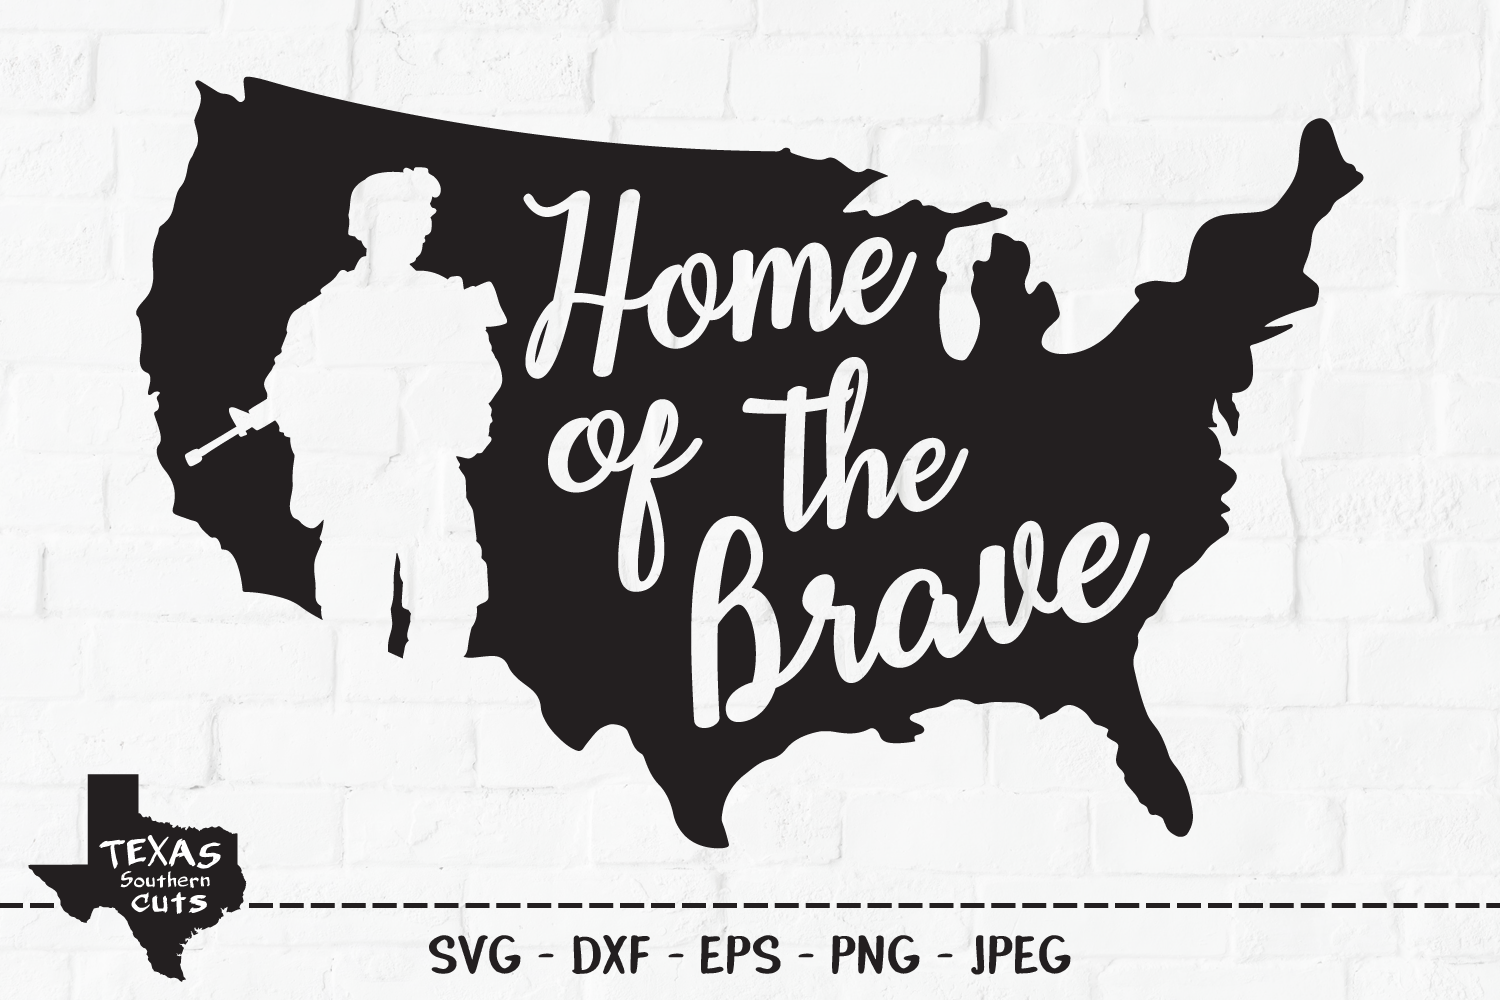 Download Free Home Of The Brave Patriotic Design Graphic By for Cricut Explore, Silhouette and other cutting machines.